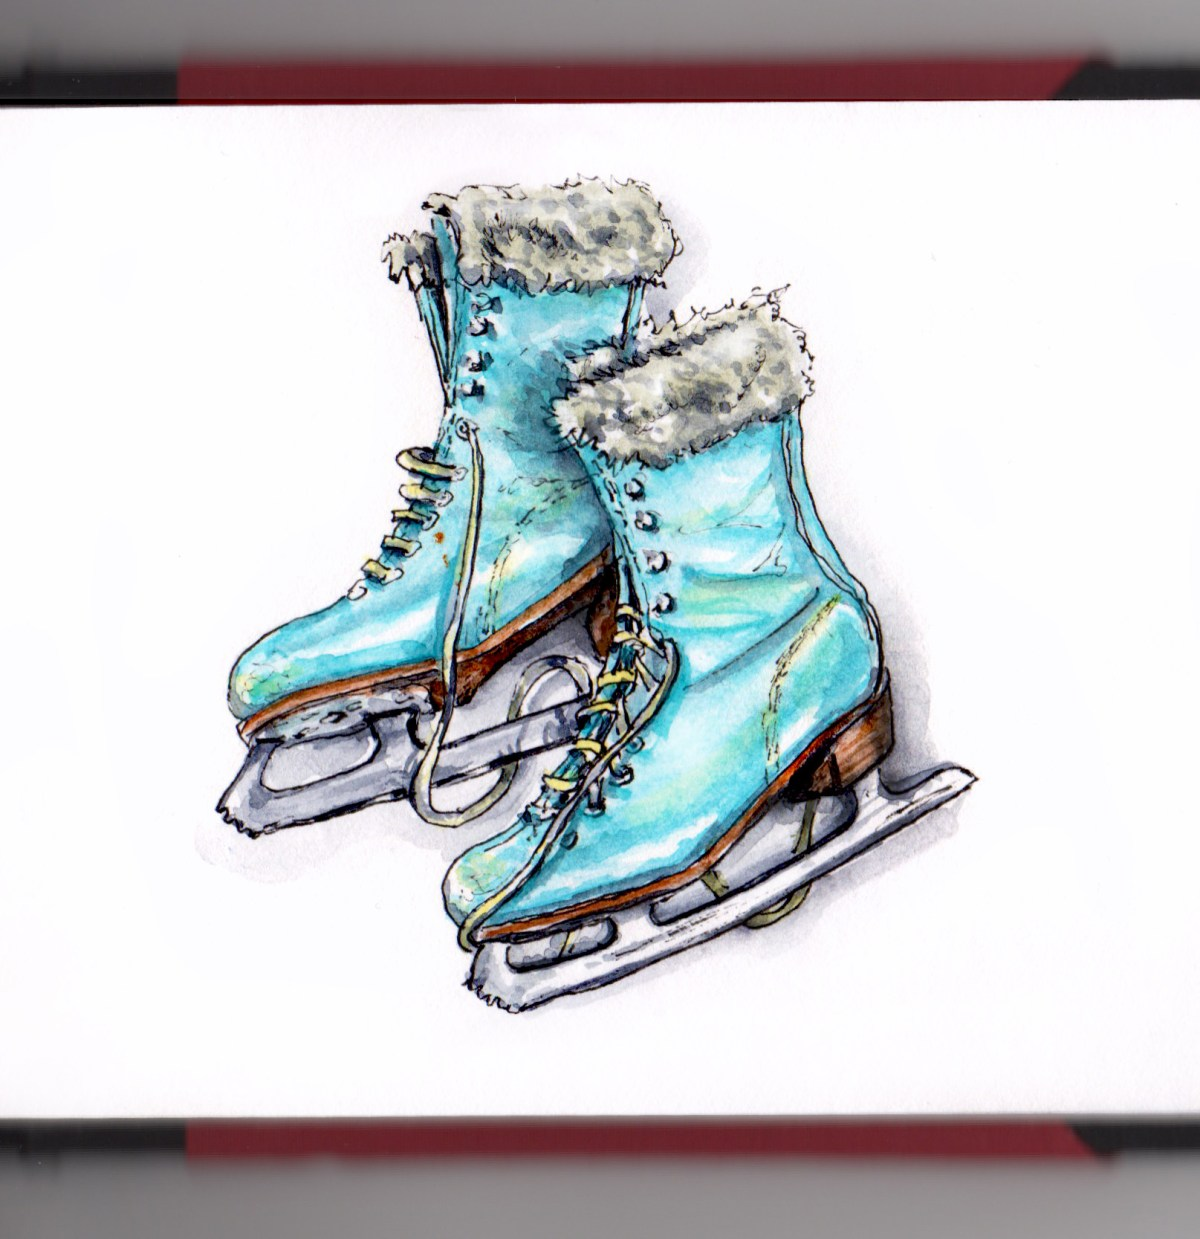 Day 26 - #WorldWatercolorGroup Skating on Thin Ice Blue Ice Skates Fur Top on White Background watercolor - #doodlewash